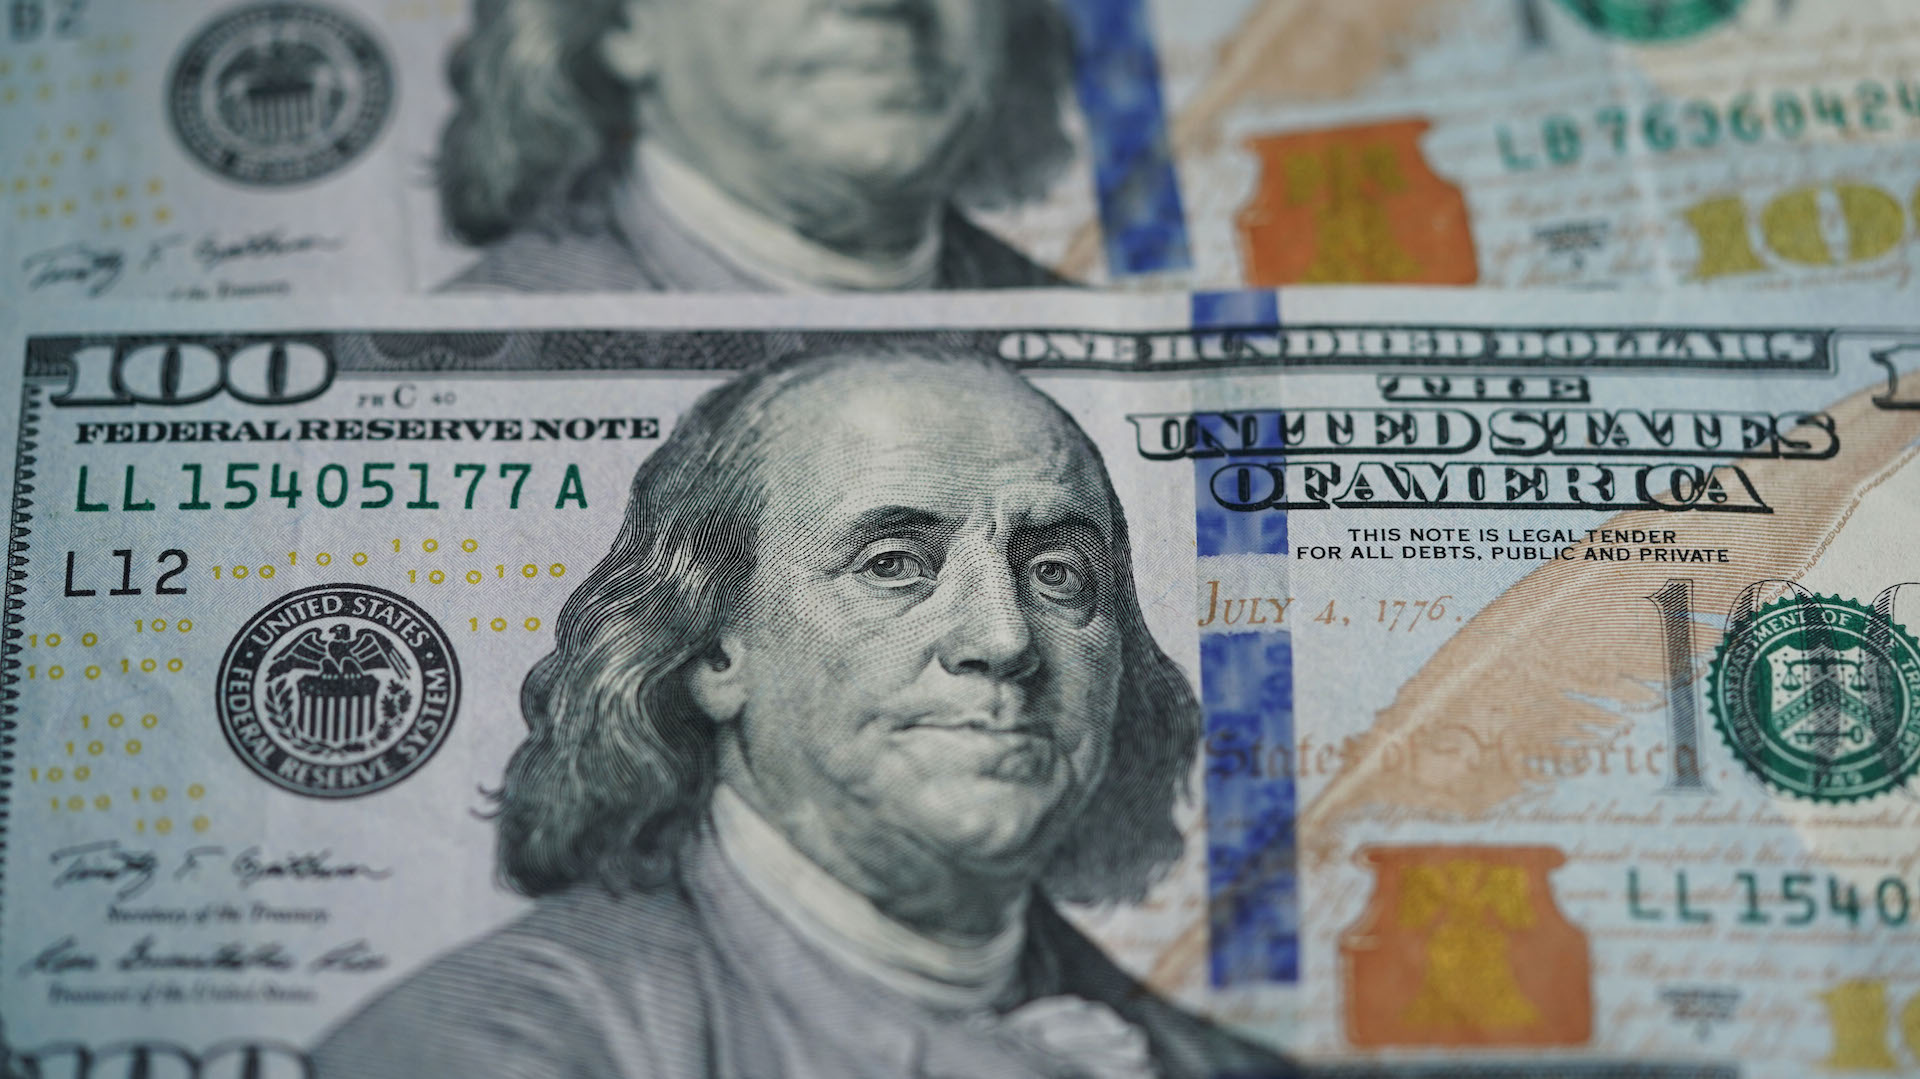 Stimulus Checks Have Been Addressed to Dead People While Millions of Americans Are Still Waiting